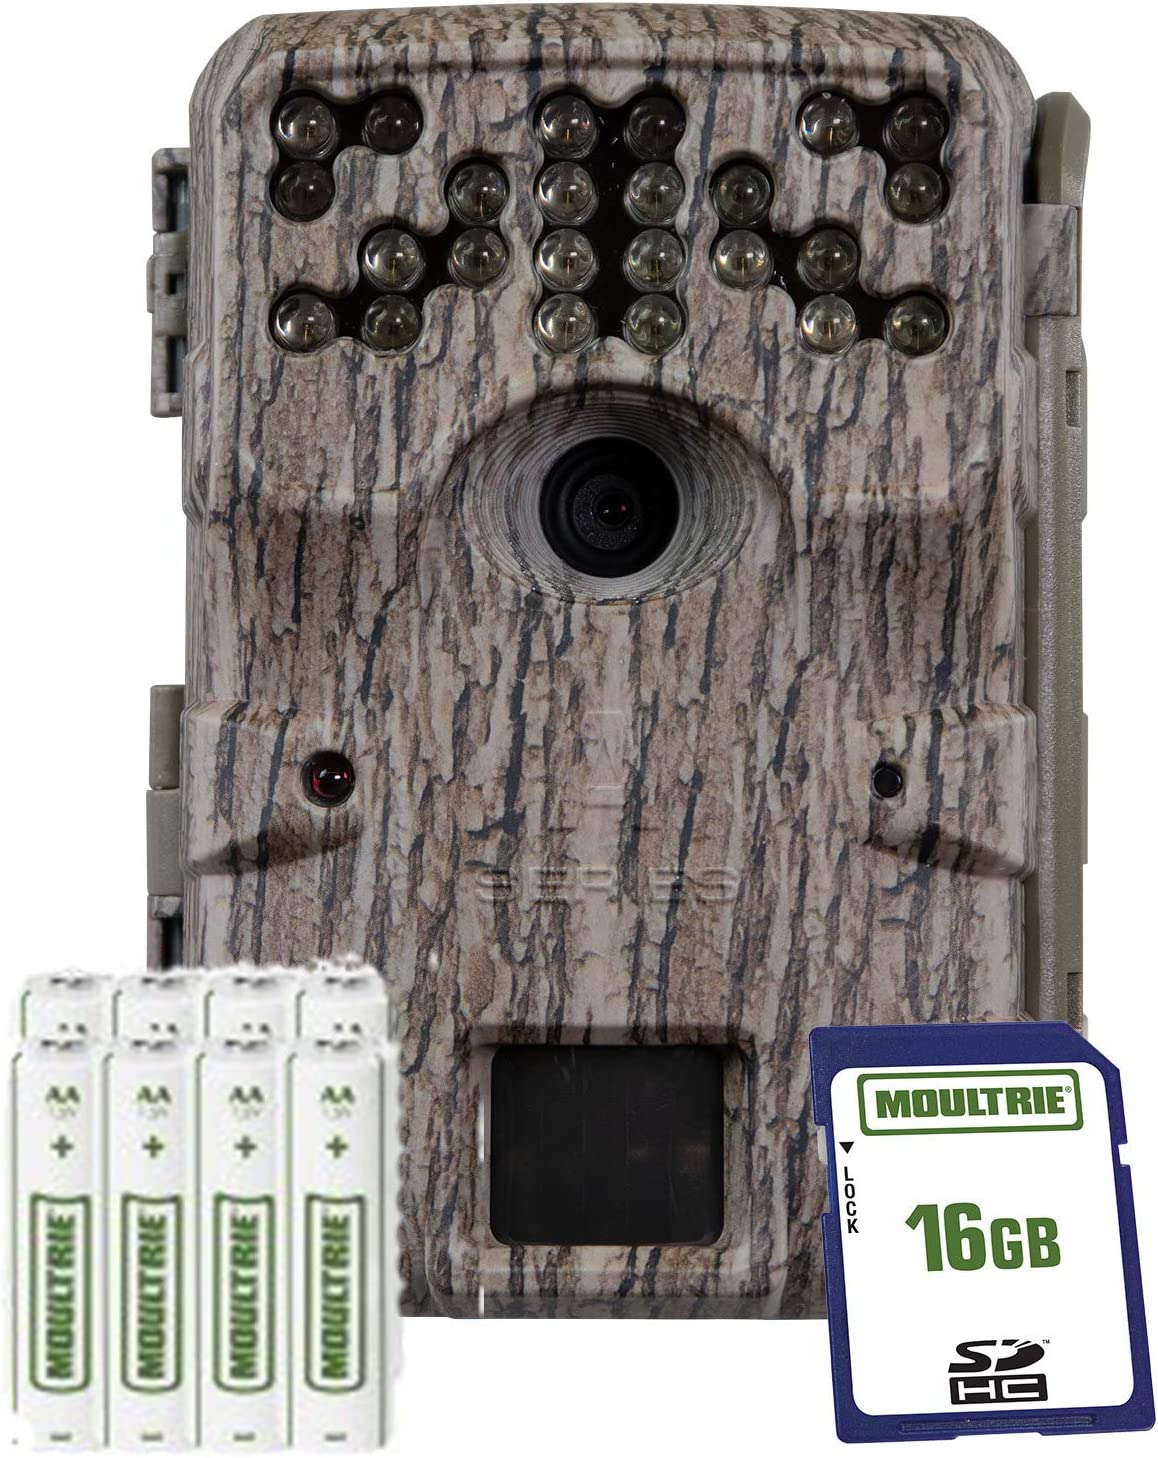 Moultrie AM-900i Trail Dedication Camera Kit Flash Standard Invisible Houston Mall